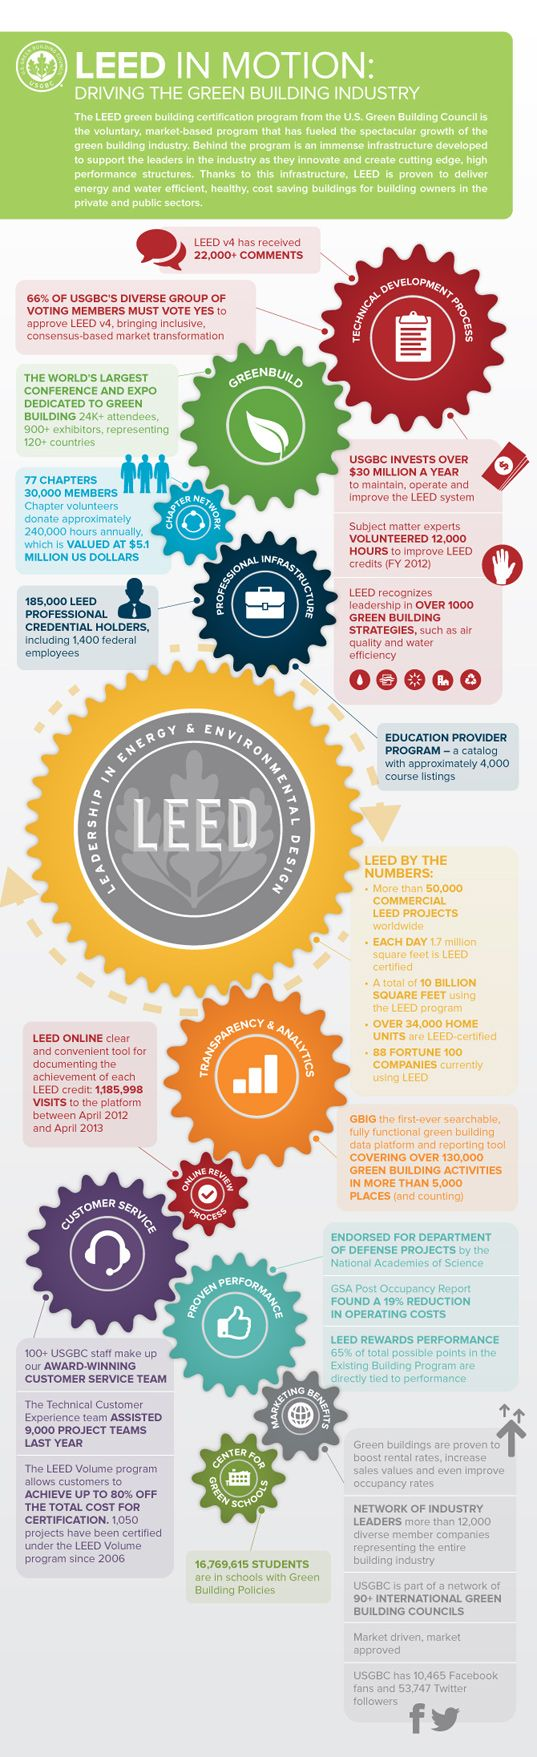 'LEED in Motion' Infographic Shows How LEED Certification Has Driven the Green Building Industry